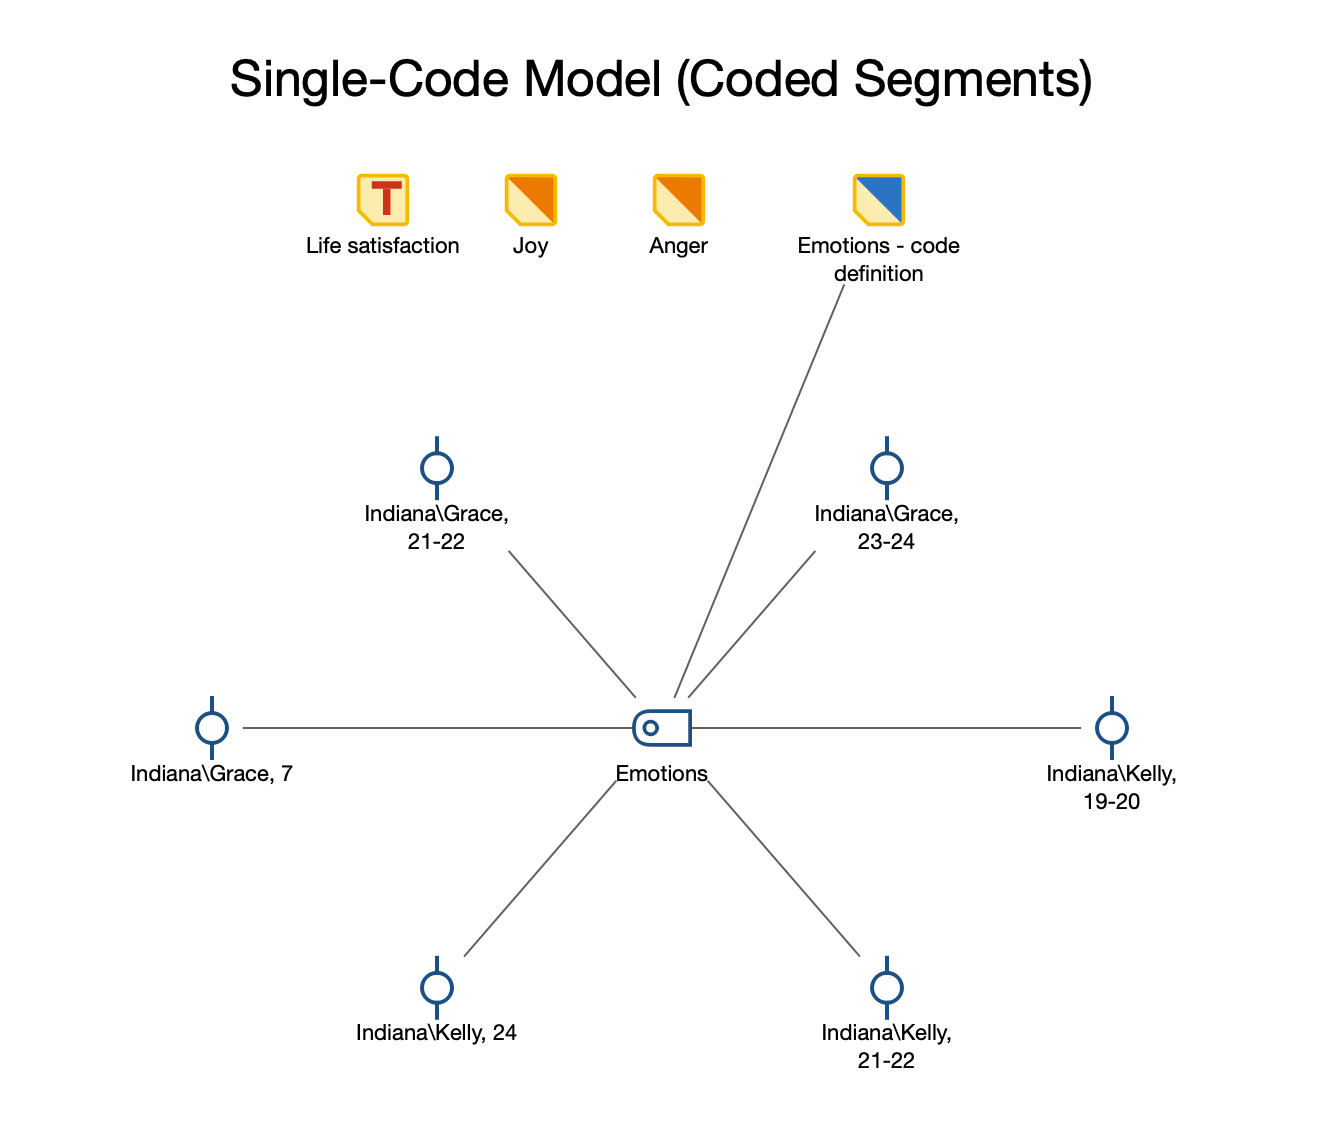 Example of a Single-Code Model